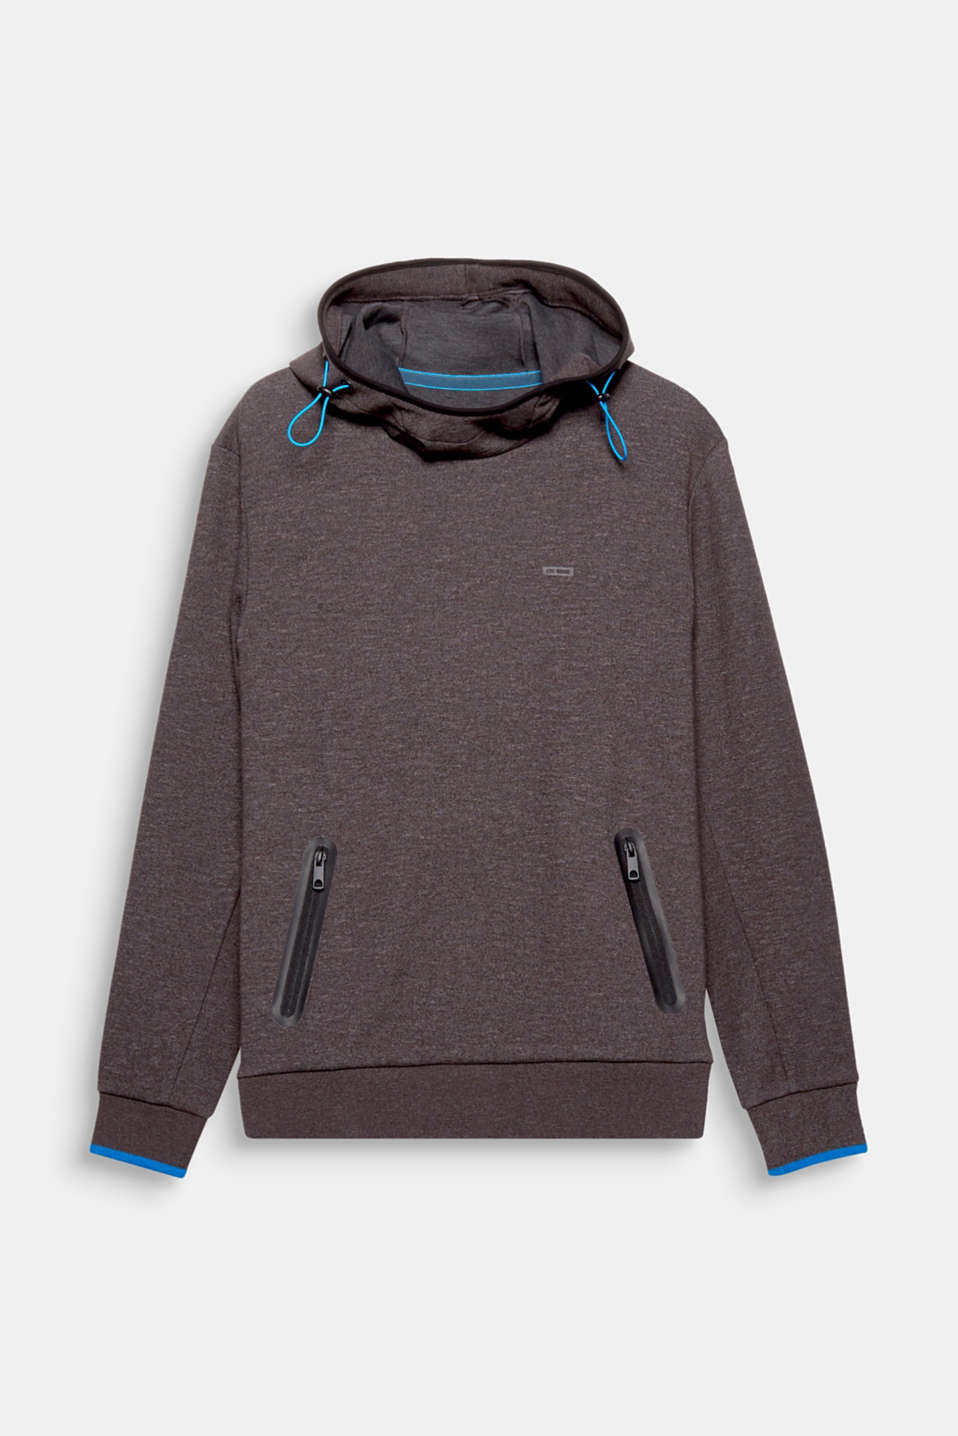 This casual hoodie unites sporty elements with contrasting details to create an ultra fashionable look.